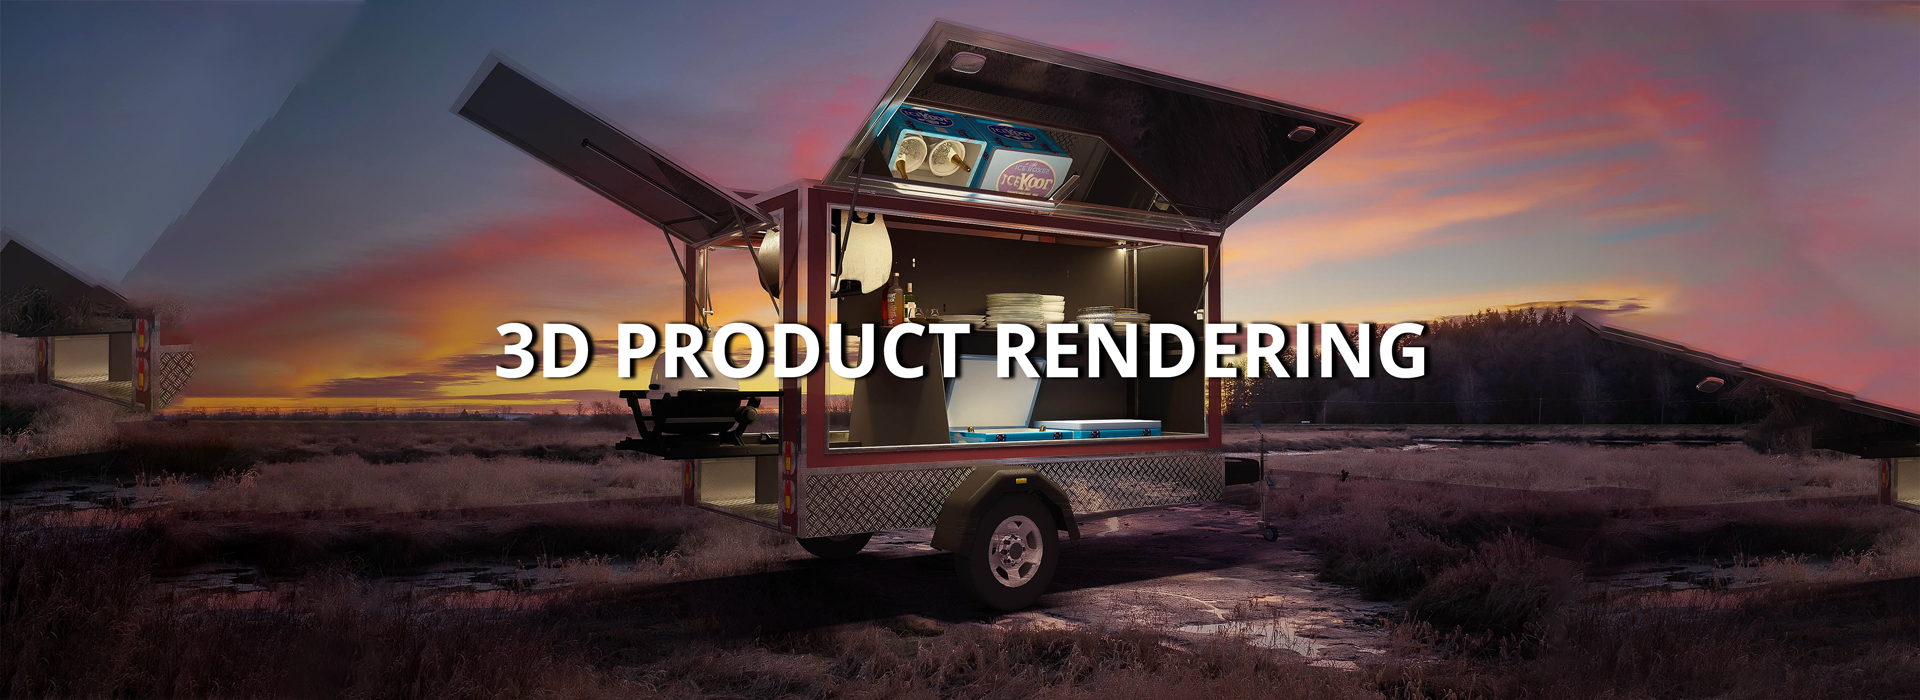 3D Product Rendering